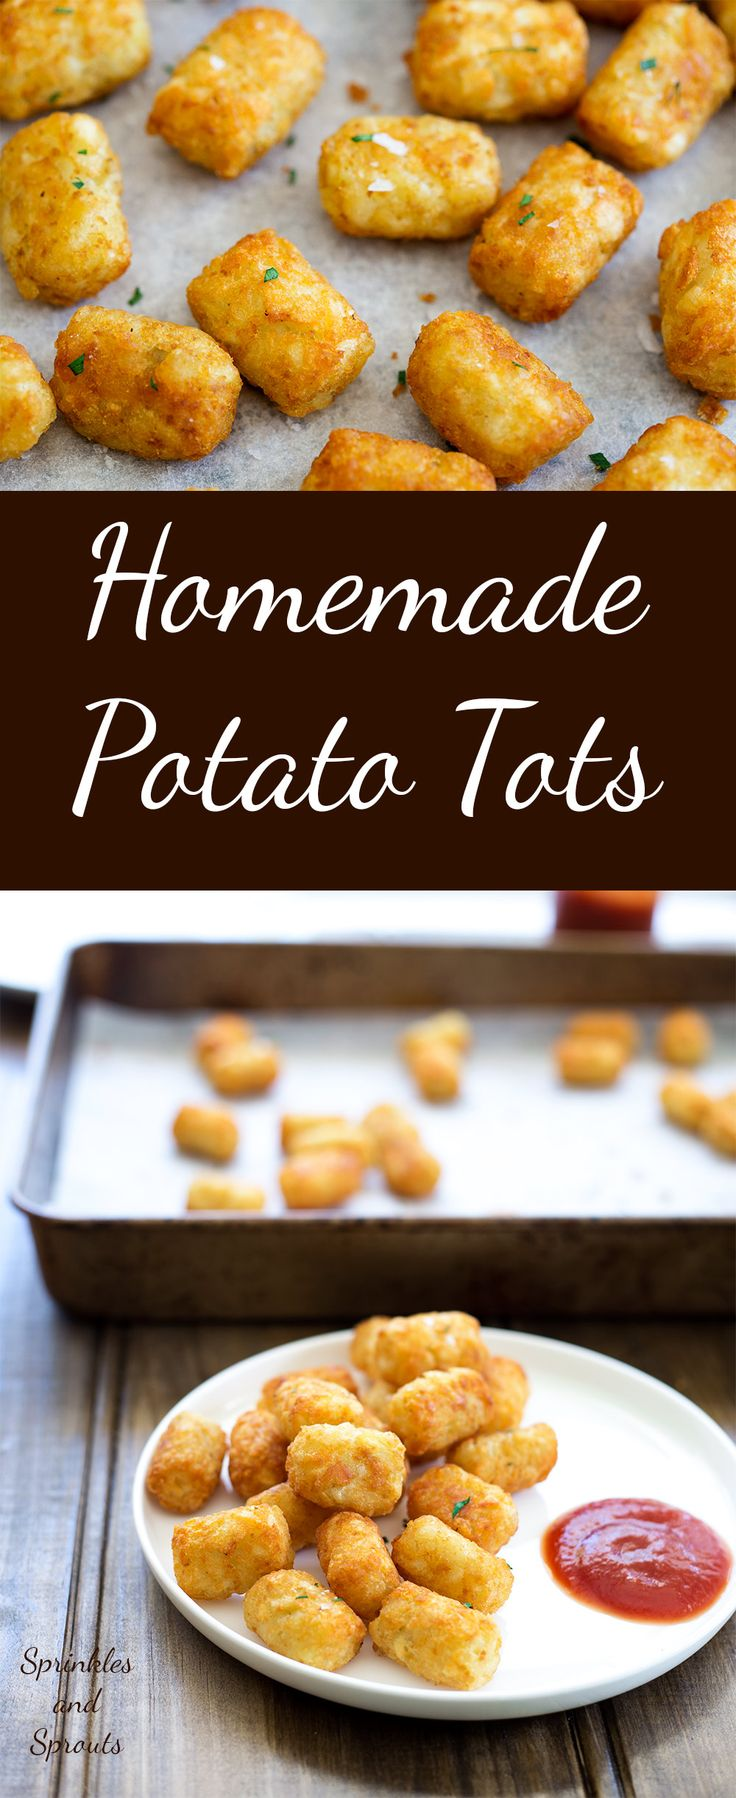 Homemade potato tots, shredded potato, cooked until crisp on the outside and fluffy inside. These homemade potato tots have just 4 ingredients (well 5 if you count salt) and are super simple to make. And keep reading for the best part of this whole recipe!!!